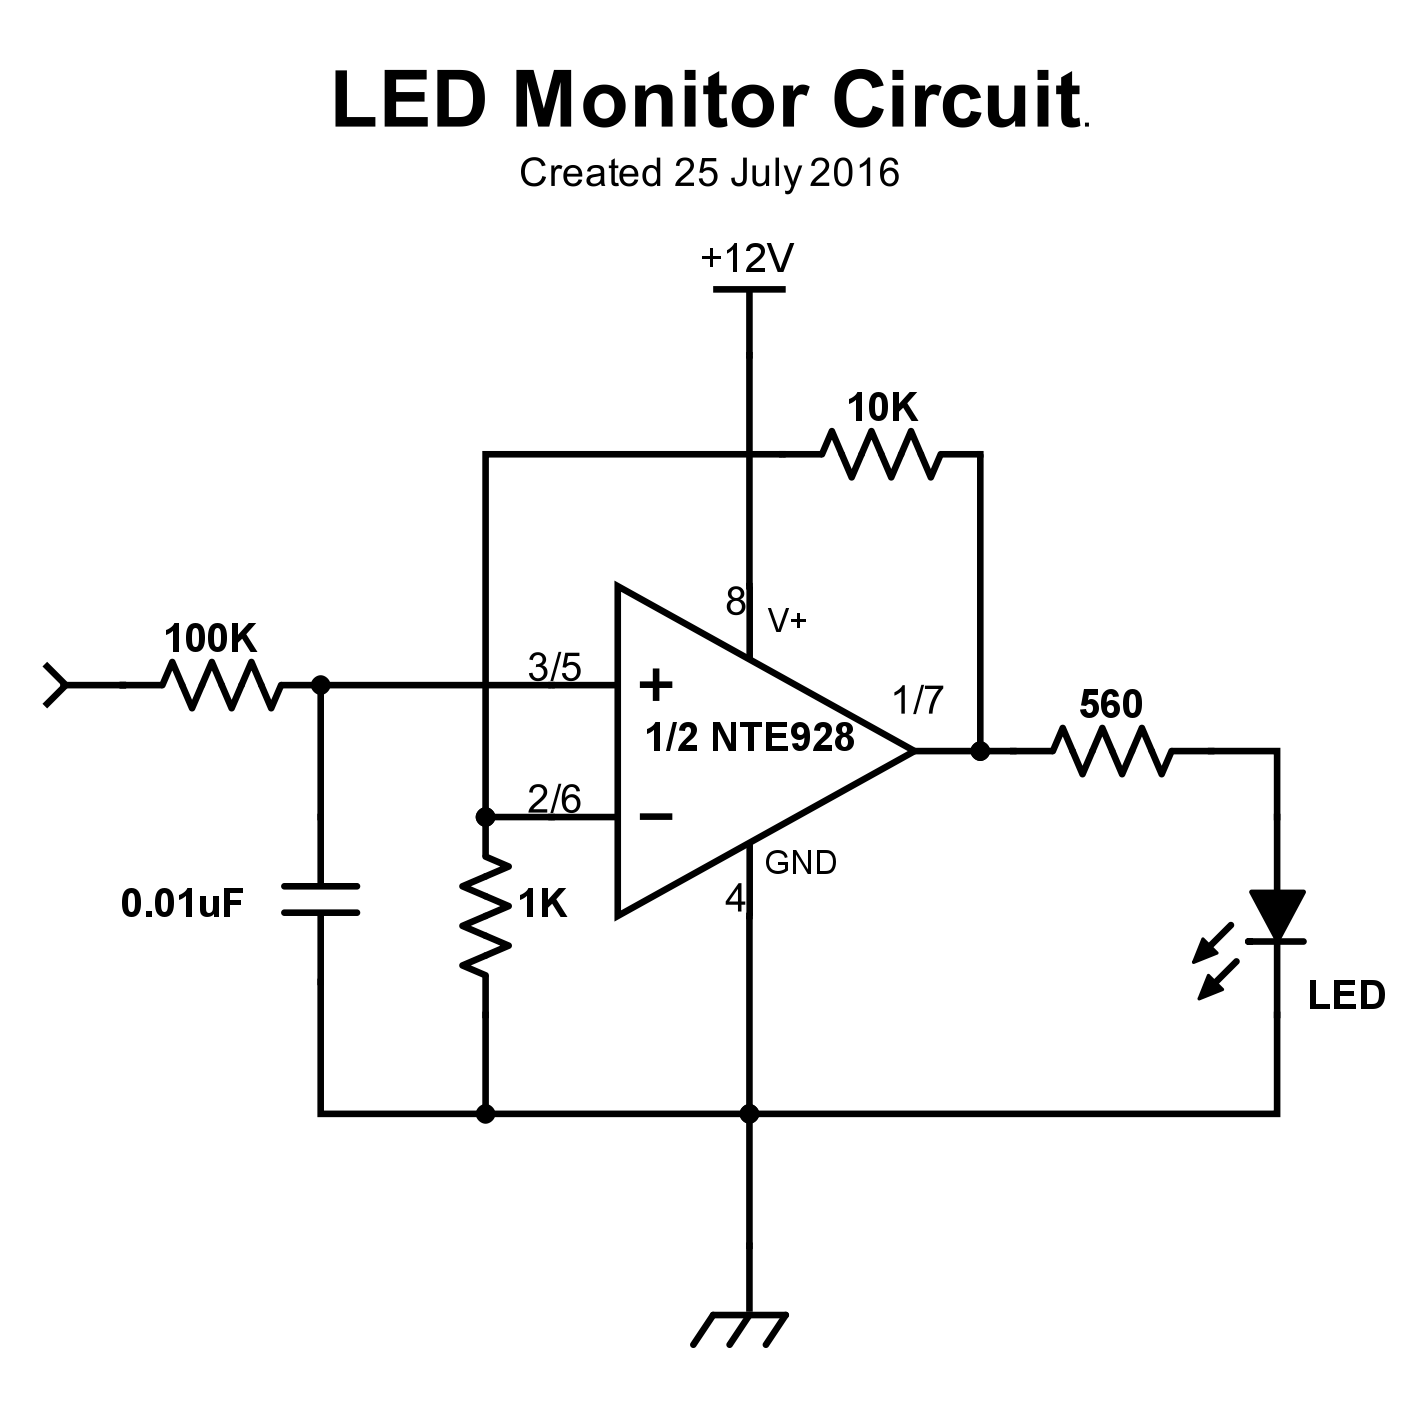 LED monitor circuit for one channel